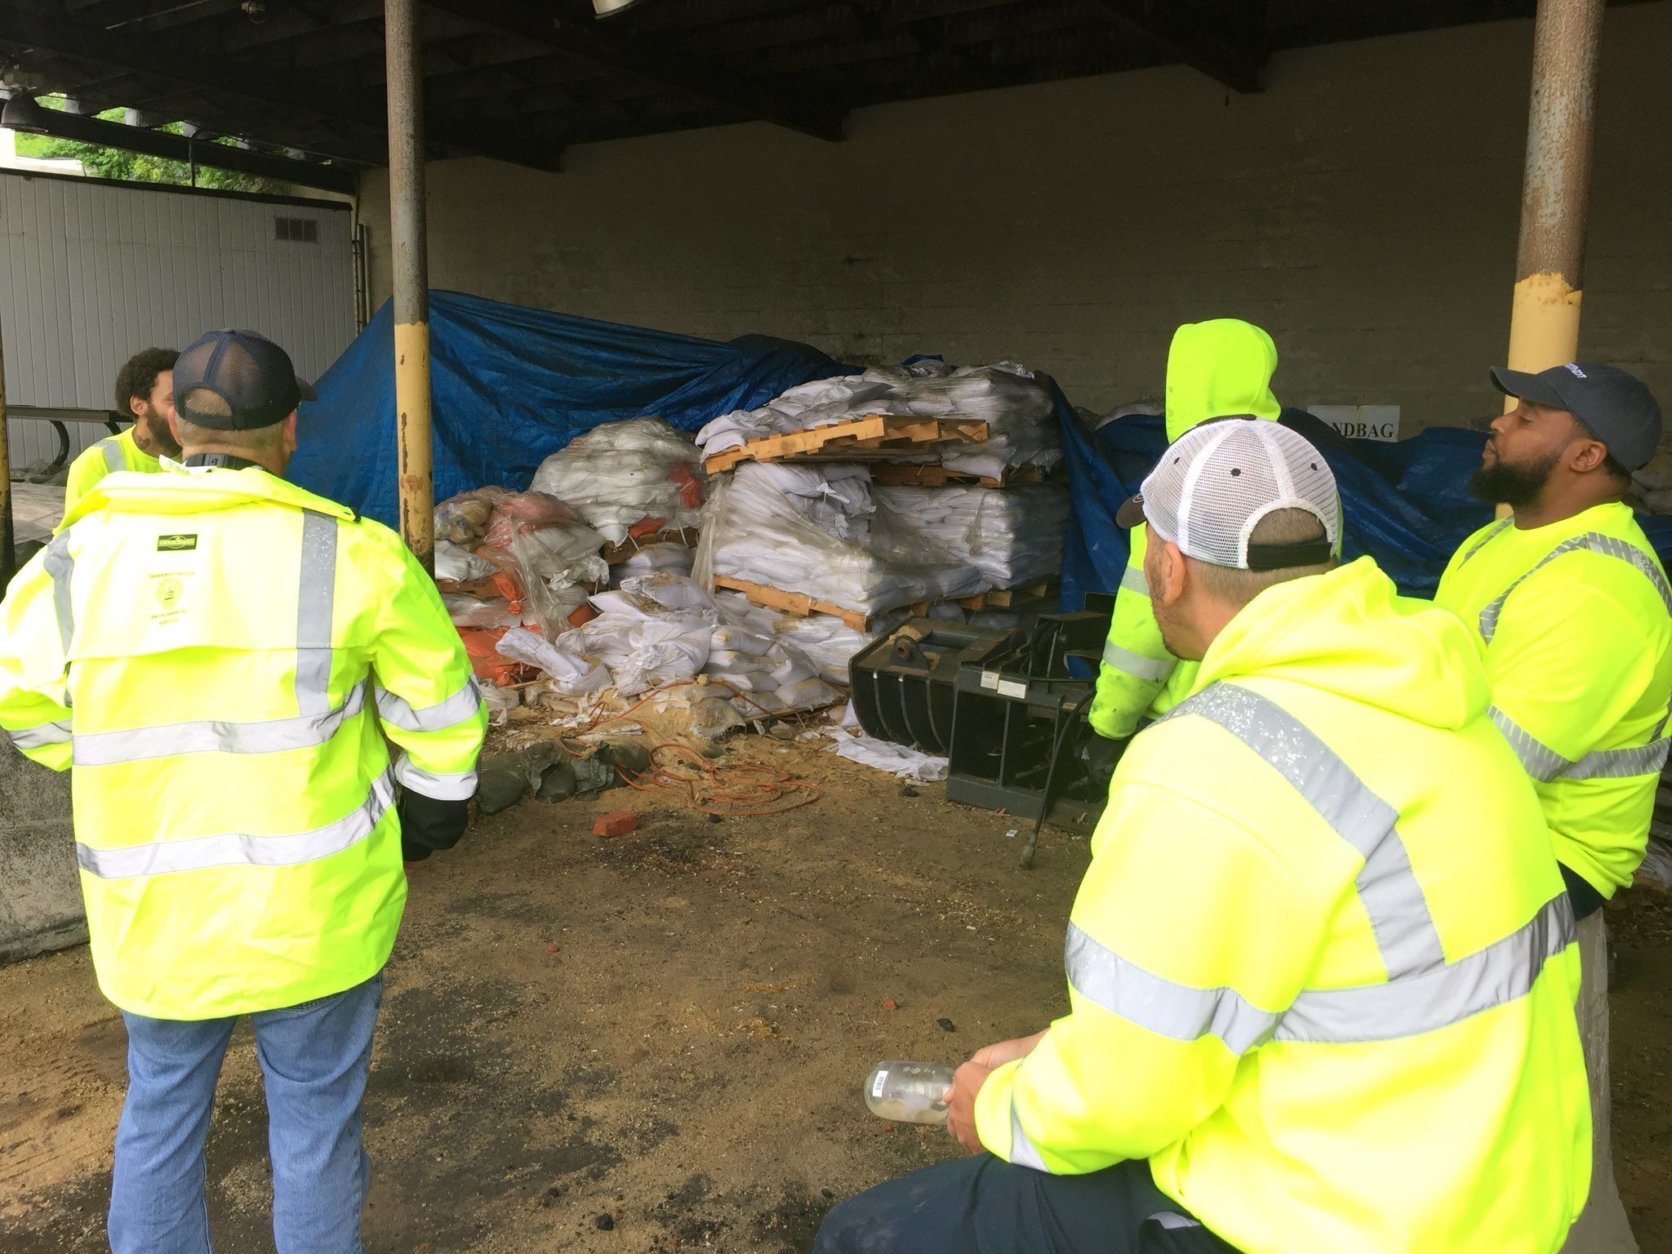 Free sandbags from the city of Alexandria are ready to load at 133 S. Quaker Lane. (WTOP/Kristi King)